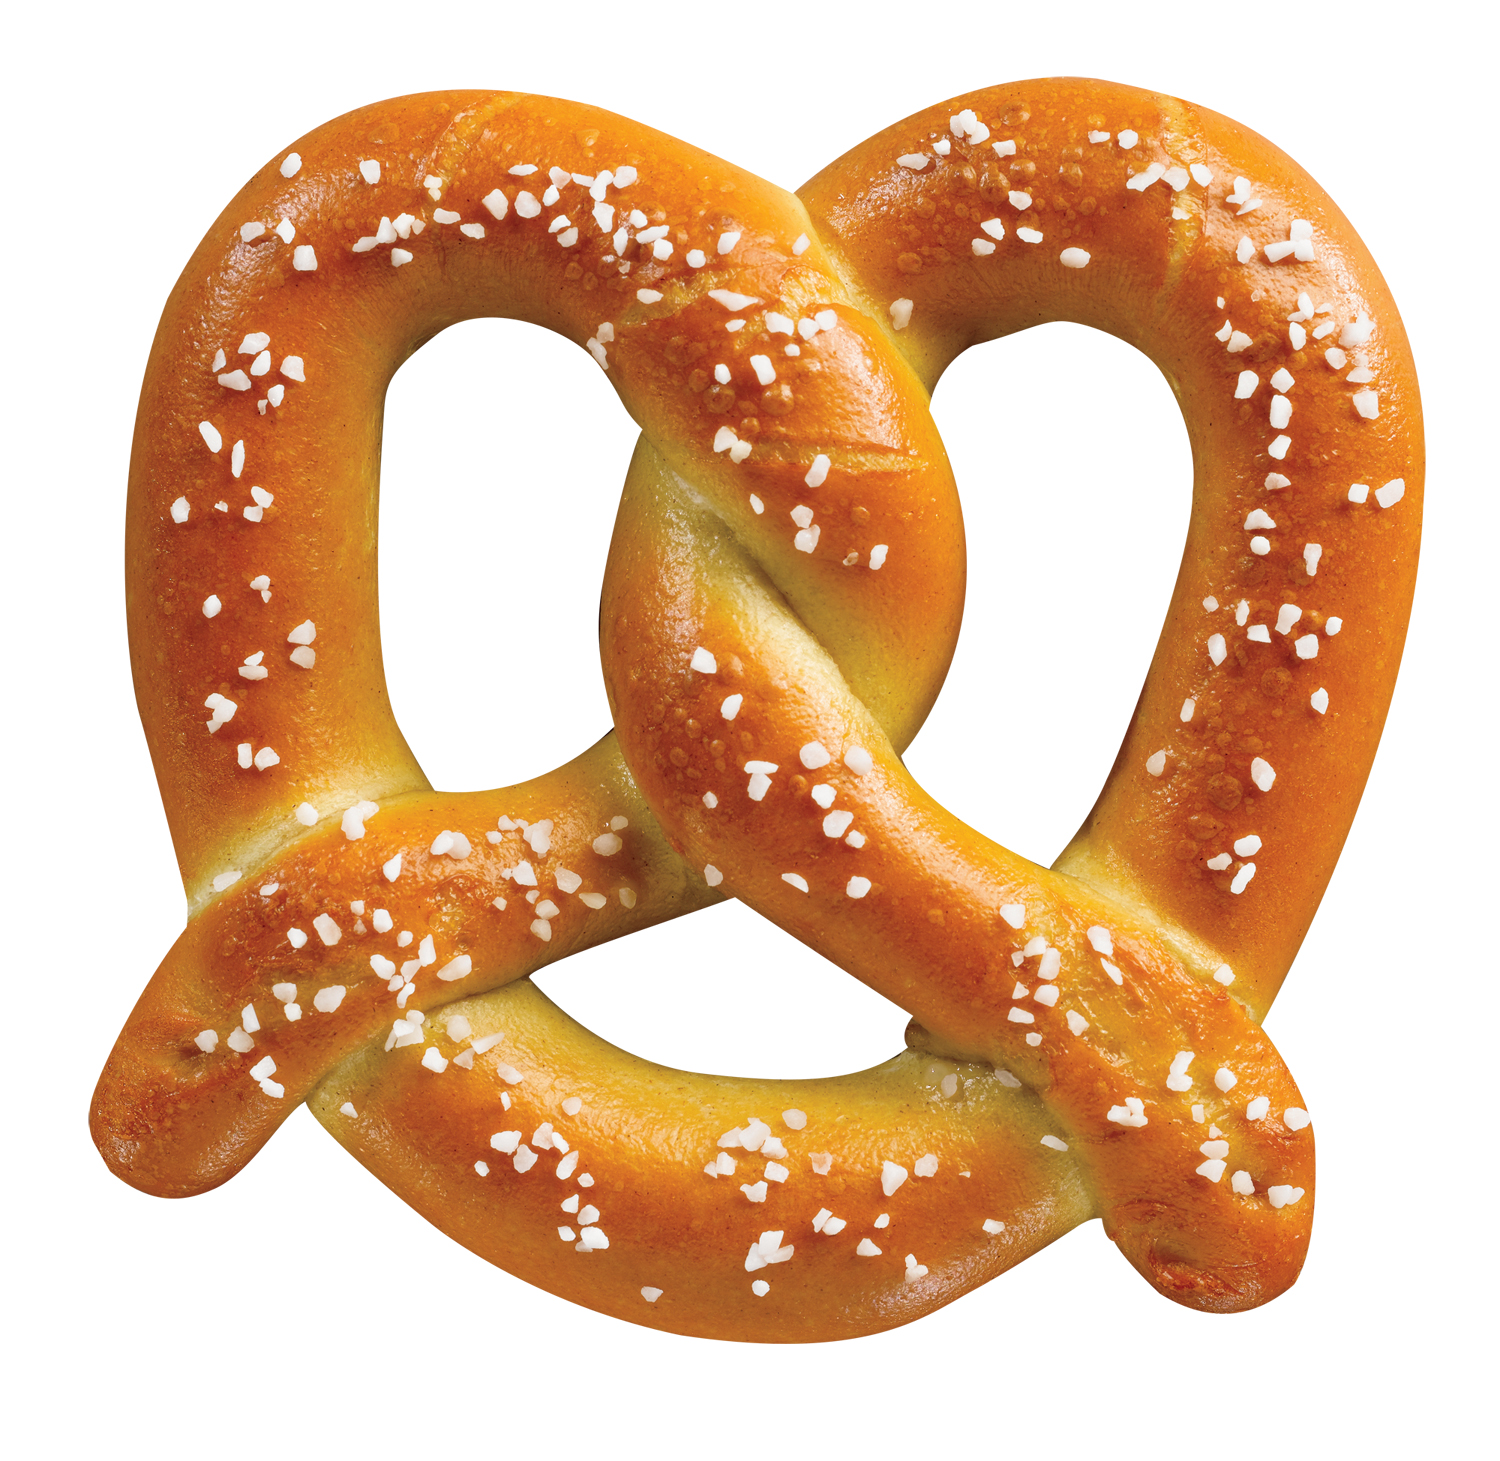 April 26 is National Pretzel Day | Foodimentary - National ...